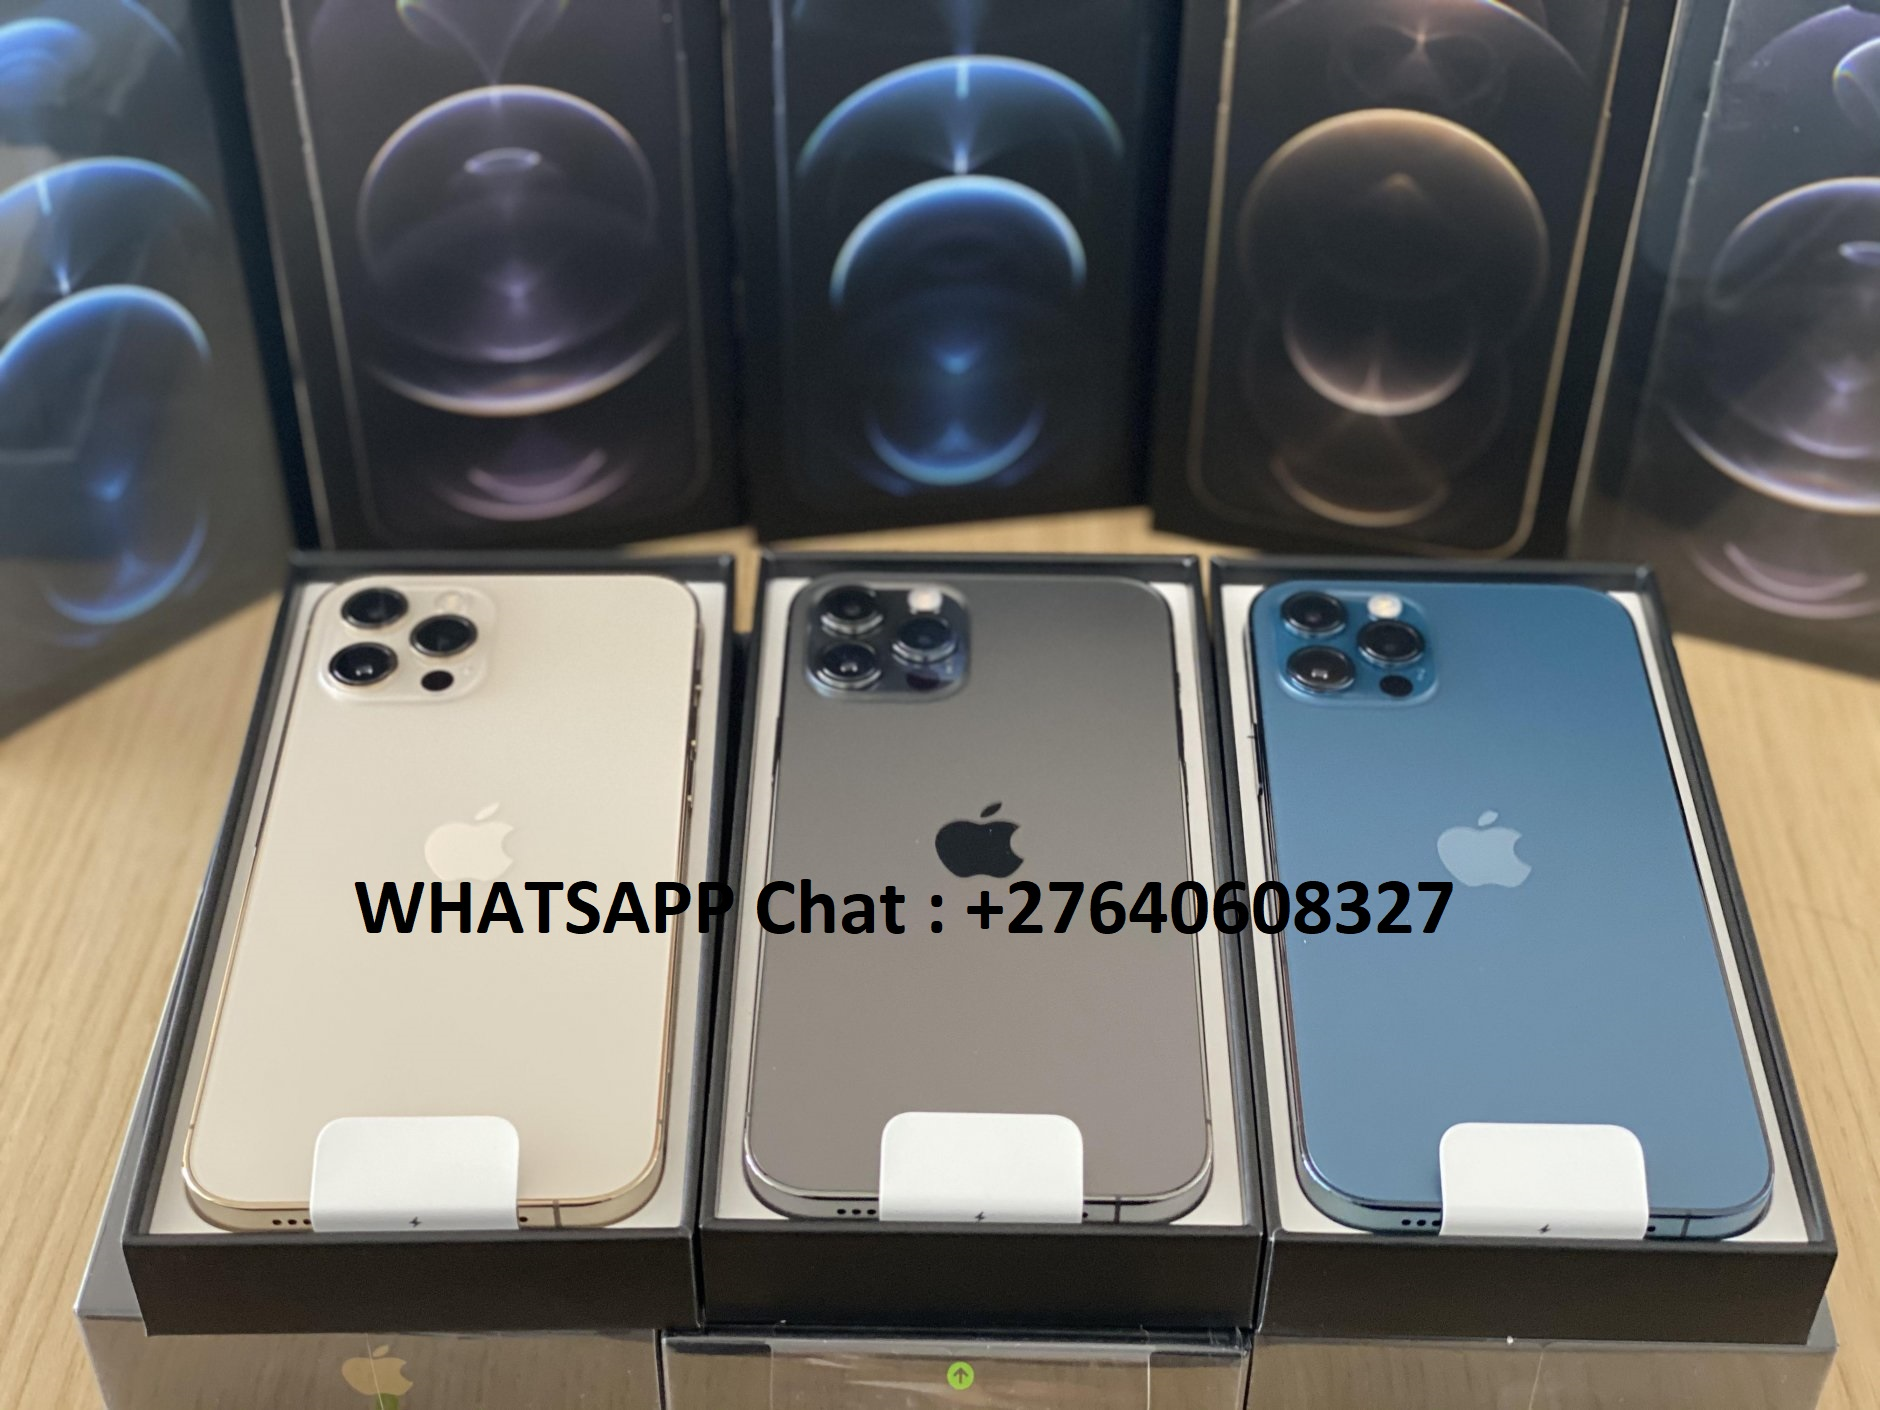 Apple iPhone 12 Pro, iPhone 12 Pro Max, iPhone 12, iPhone 12 Mini, iPhone 11 Pro, iPhone 11 Pro Max , Samsung Galaxy S21 Ultra 5G, Samsung Galaxy S21 Plus 5G, Samsung  Galaxy S21, Samsung Note 20, Samsung Note 20 Ultra 5G